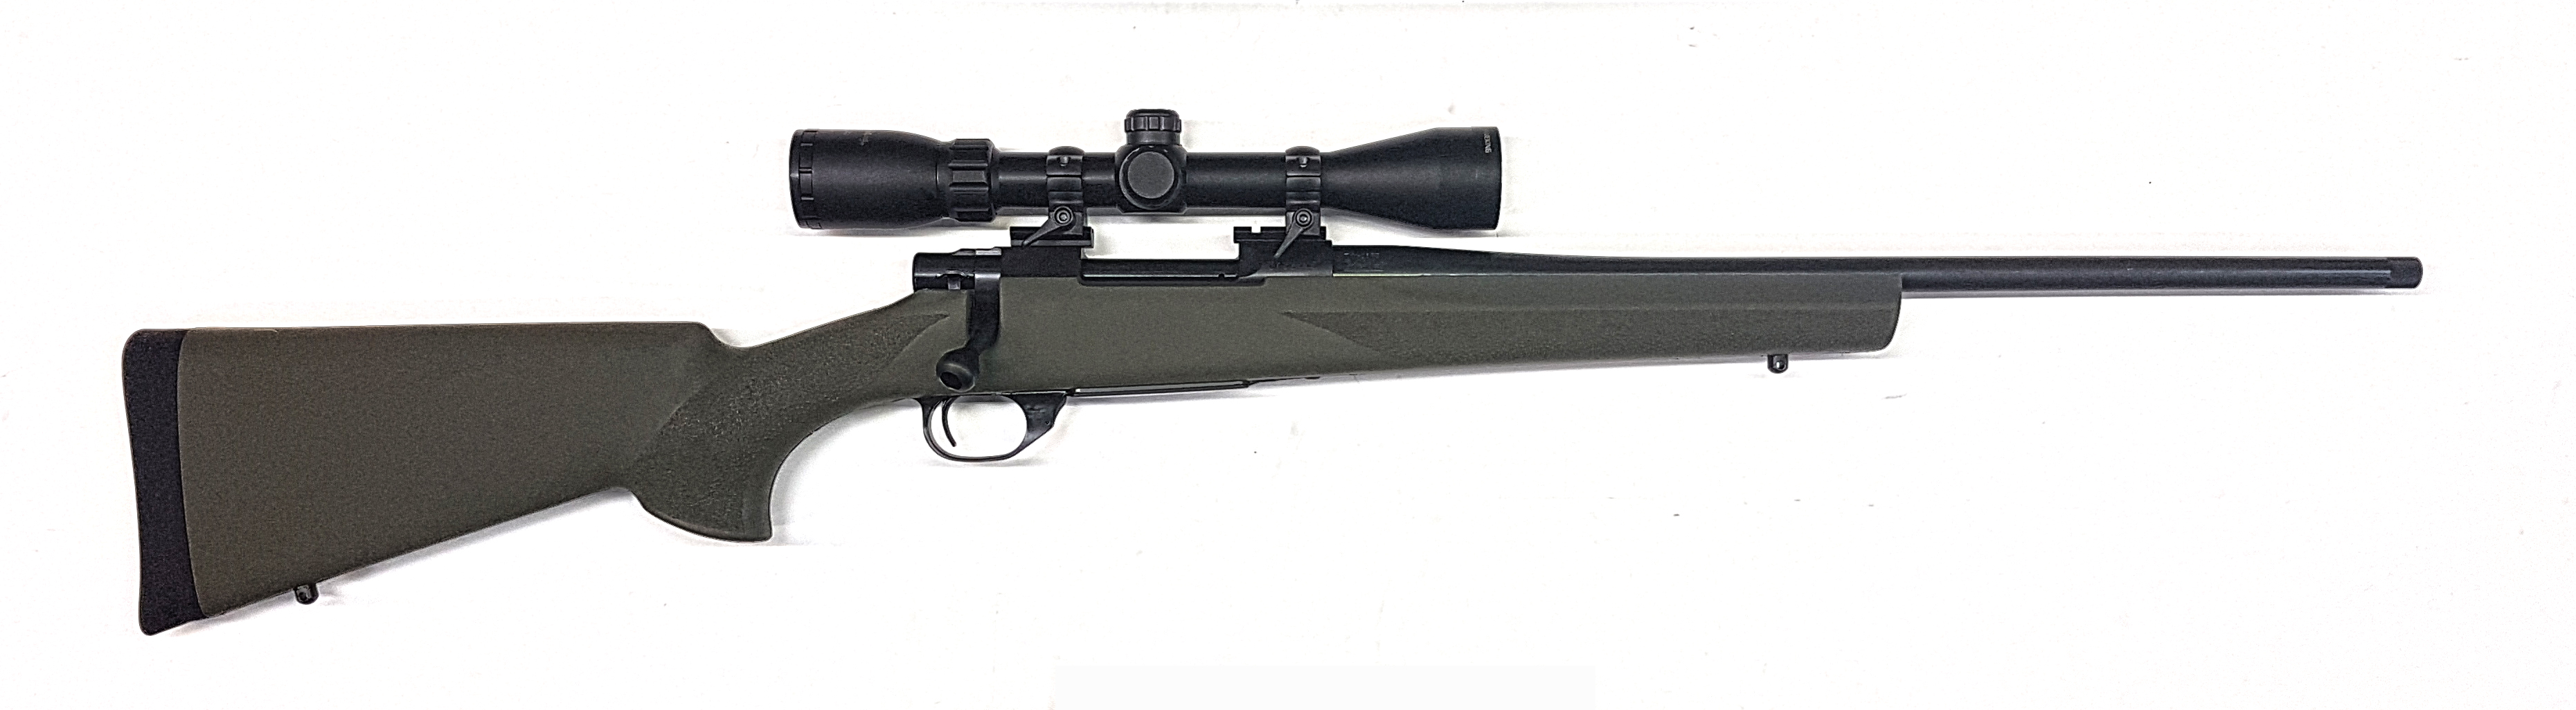 Howa Mod 1500 Blued Green Hogue Rifle threaded with Scope